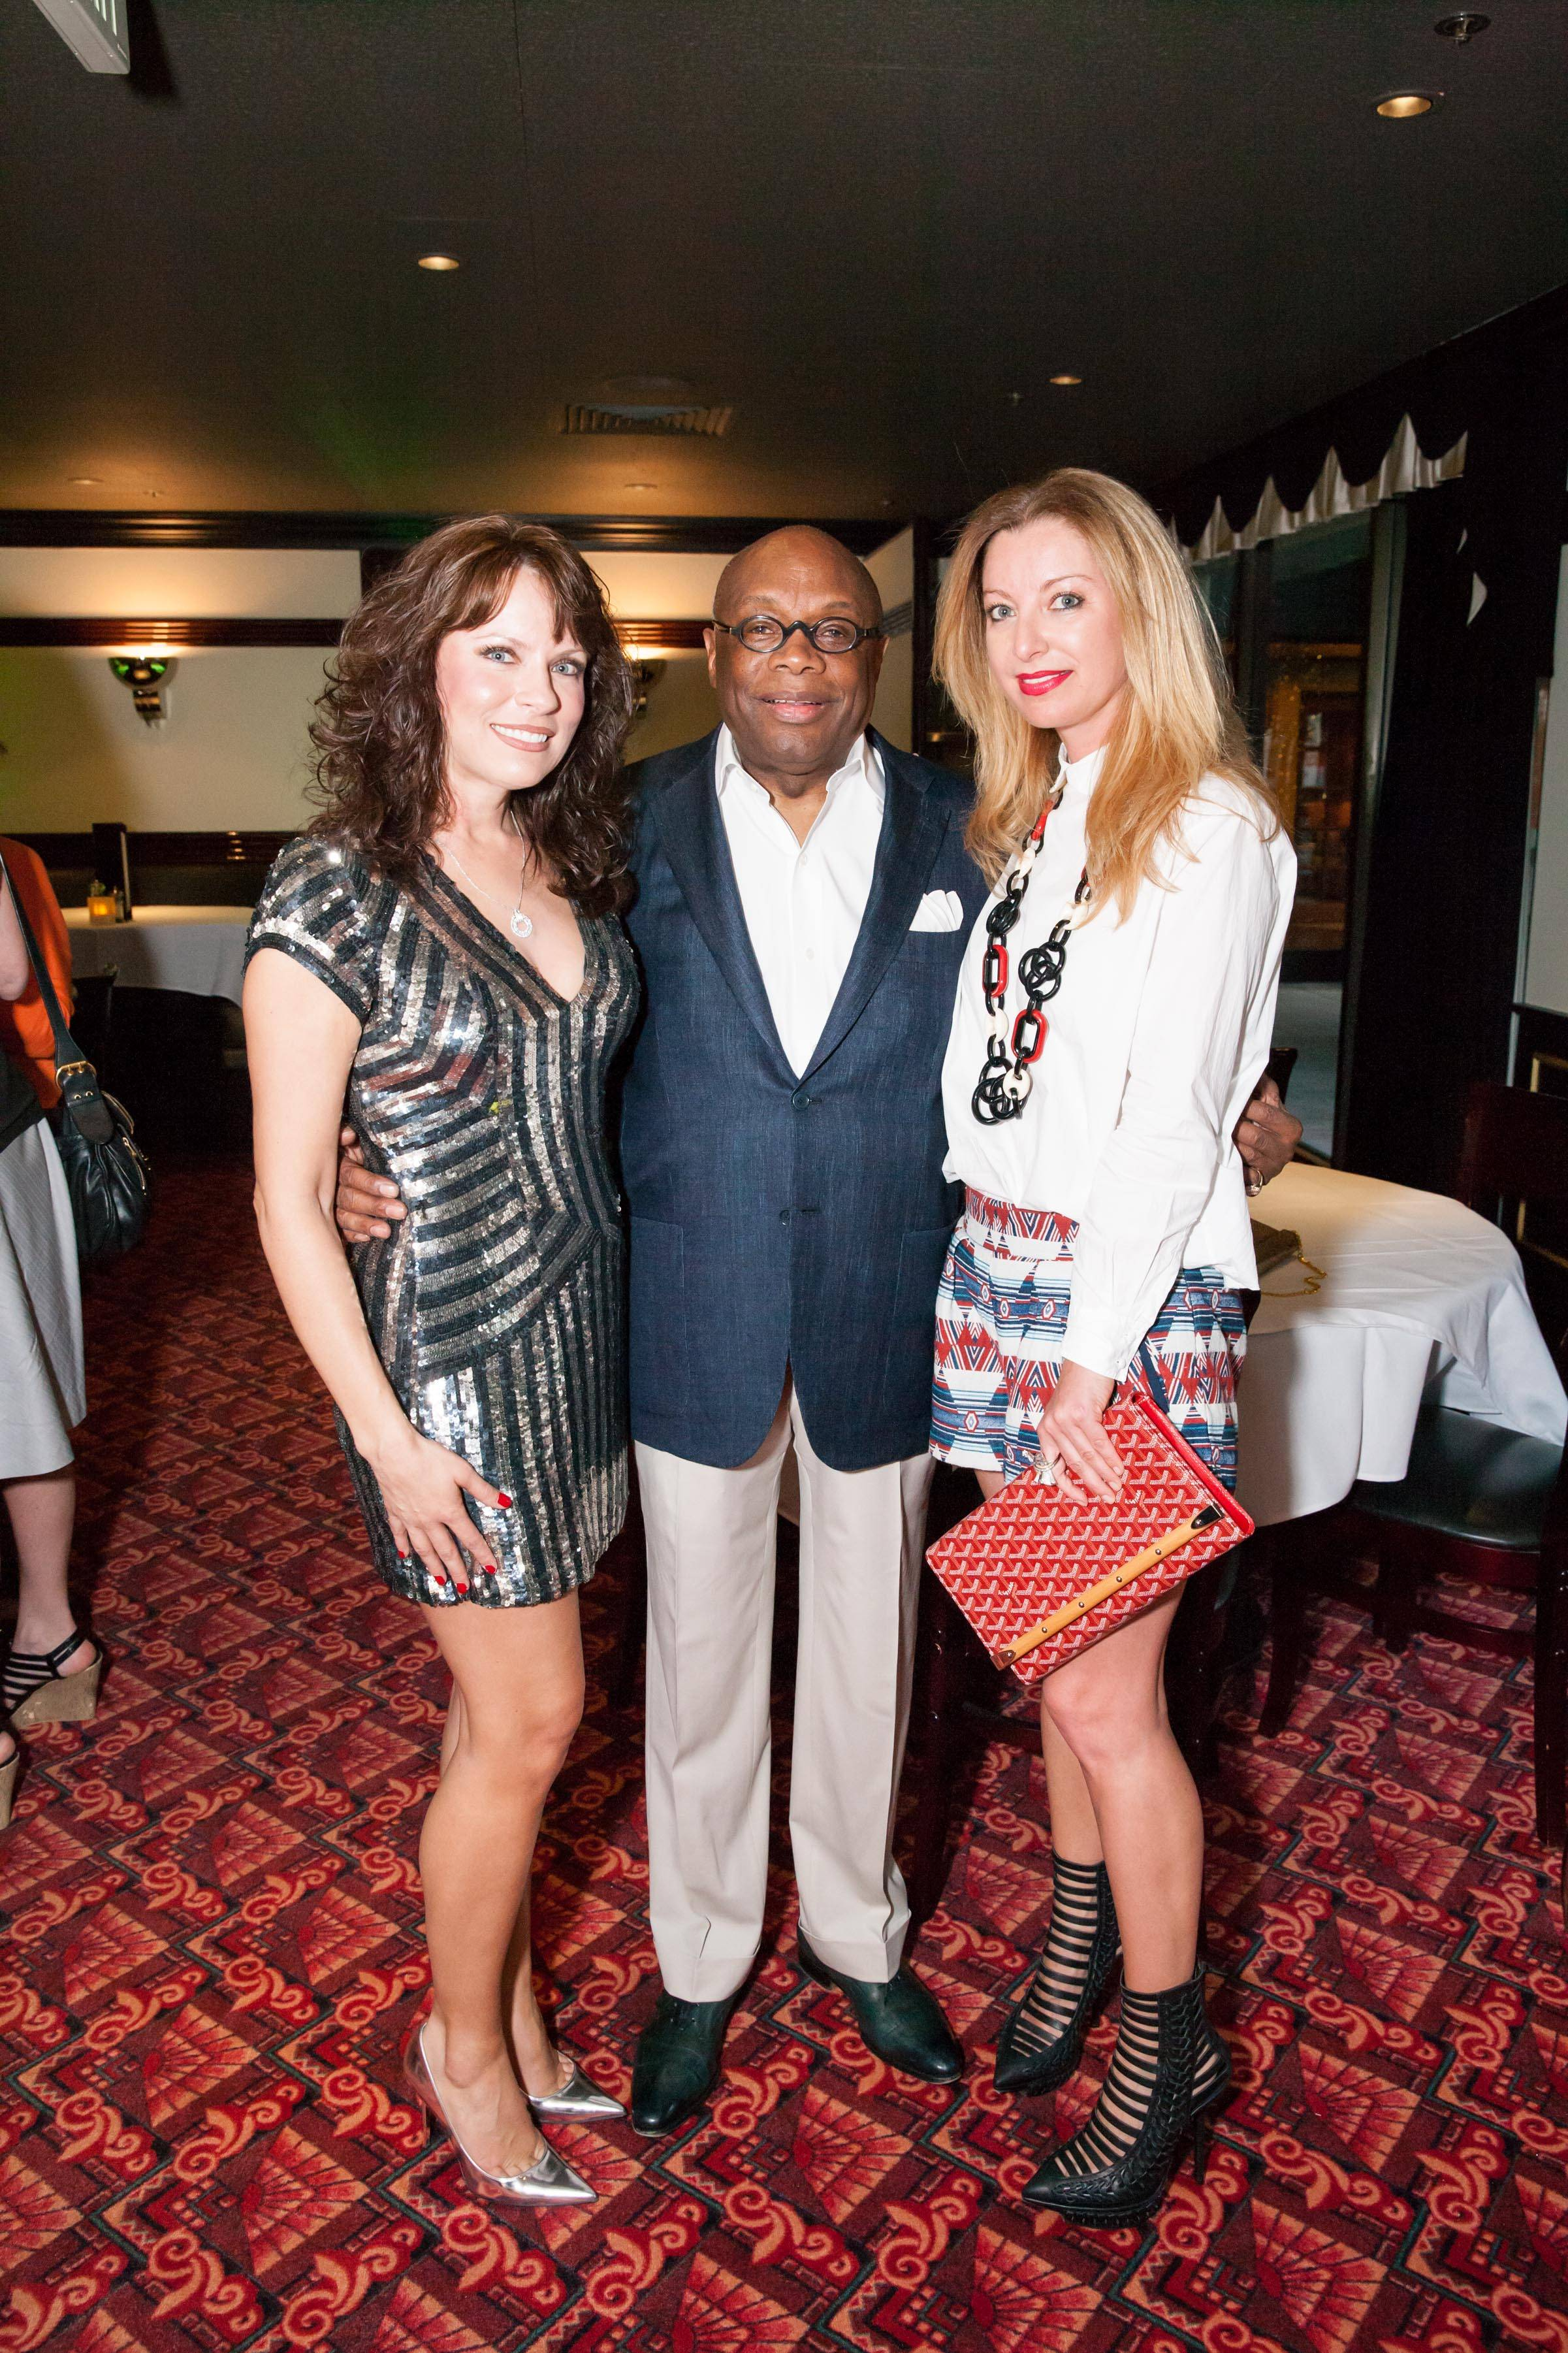 Jennifer Dal Bozzo, Willie Brown, Sonya Molodetskaya at the Osso Steakhouse Opening  Photo Credit: Drew Altizer Photography